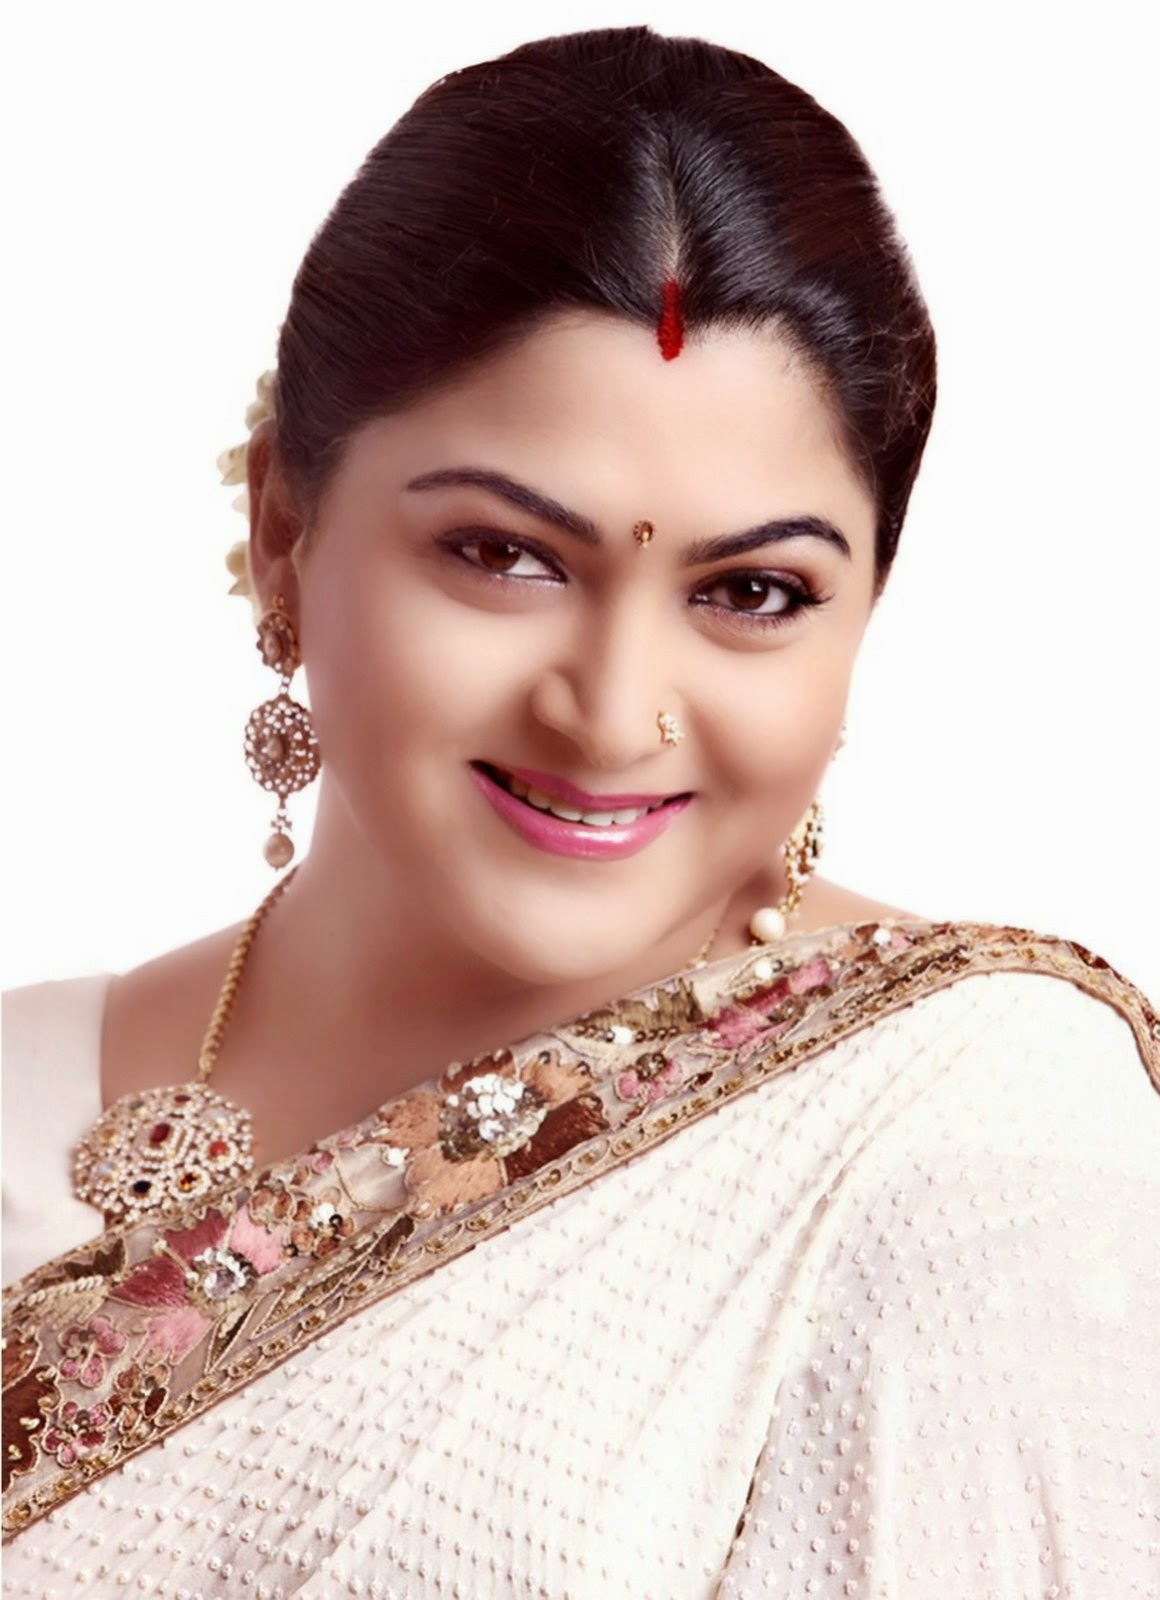 kushboo ramnawakushboo ramnawaj, kushboo ramnawa, kushboo sundar instagram, kushboo ramnawaj facebook, kushboo tamil songs, kushboo tamil movie list, kushboo daughters, kushboo twitter, kushboo facebook, kushboo family, kushboo photos, kushboo pundai photos, kushboo blue films photos, kushboo hot videos, kushboo hot photos, kushboo sundar, kushboo wiki, kushboo sundar twitter, kushboo simply, kushboo actress